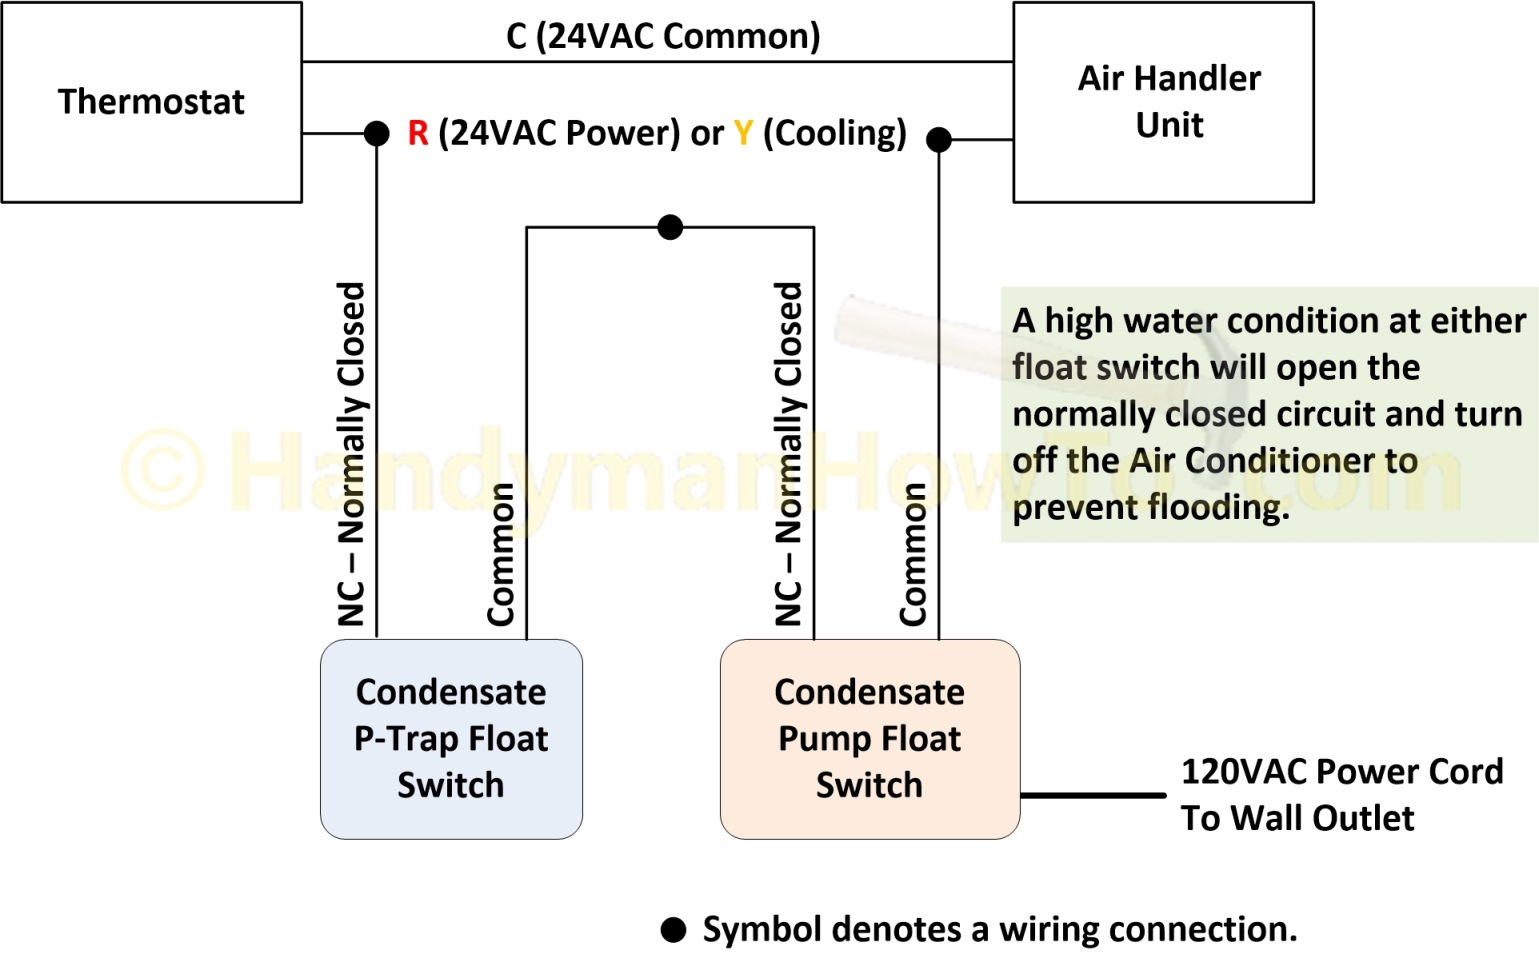 ac low voltage wiring diagram Collection-Air Conditioner P Trap Float Switch and Condensate Pump Wiring Diagram 4-c